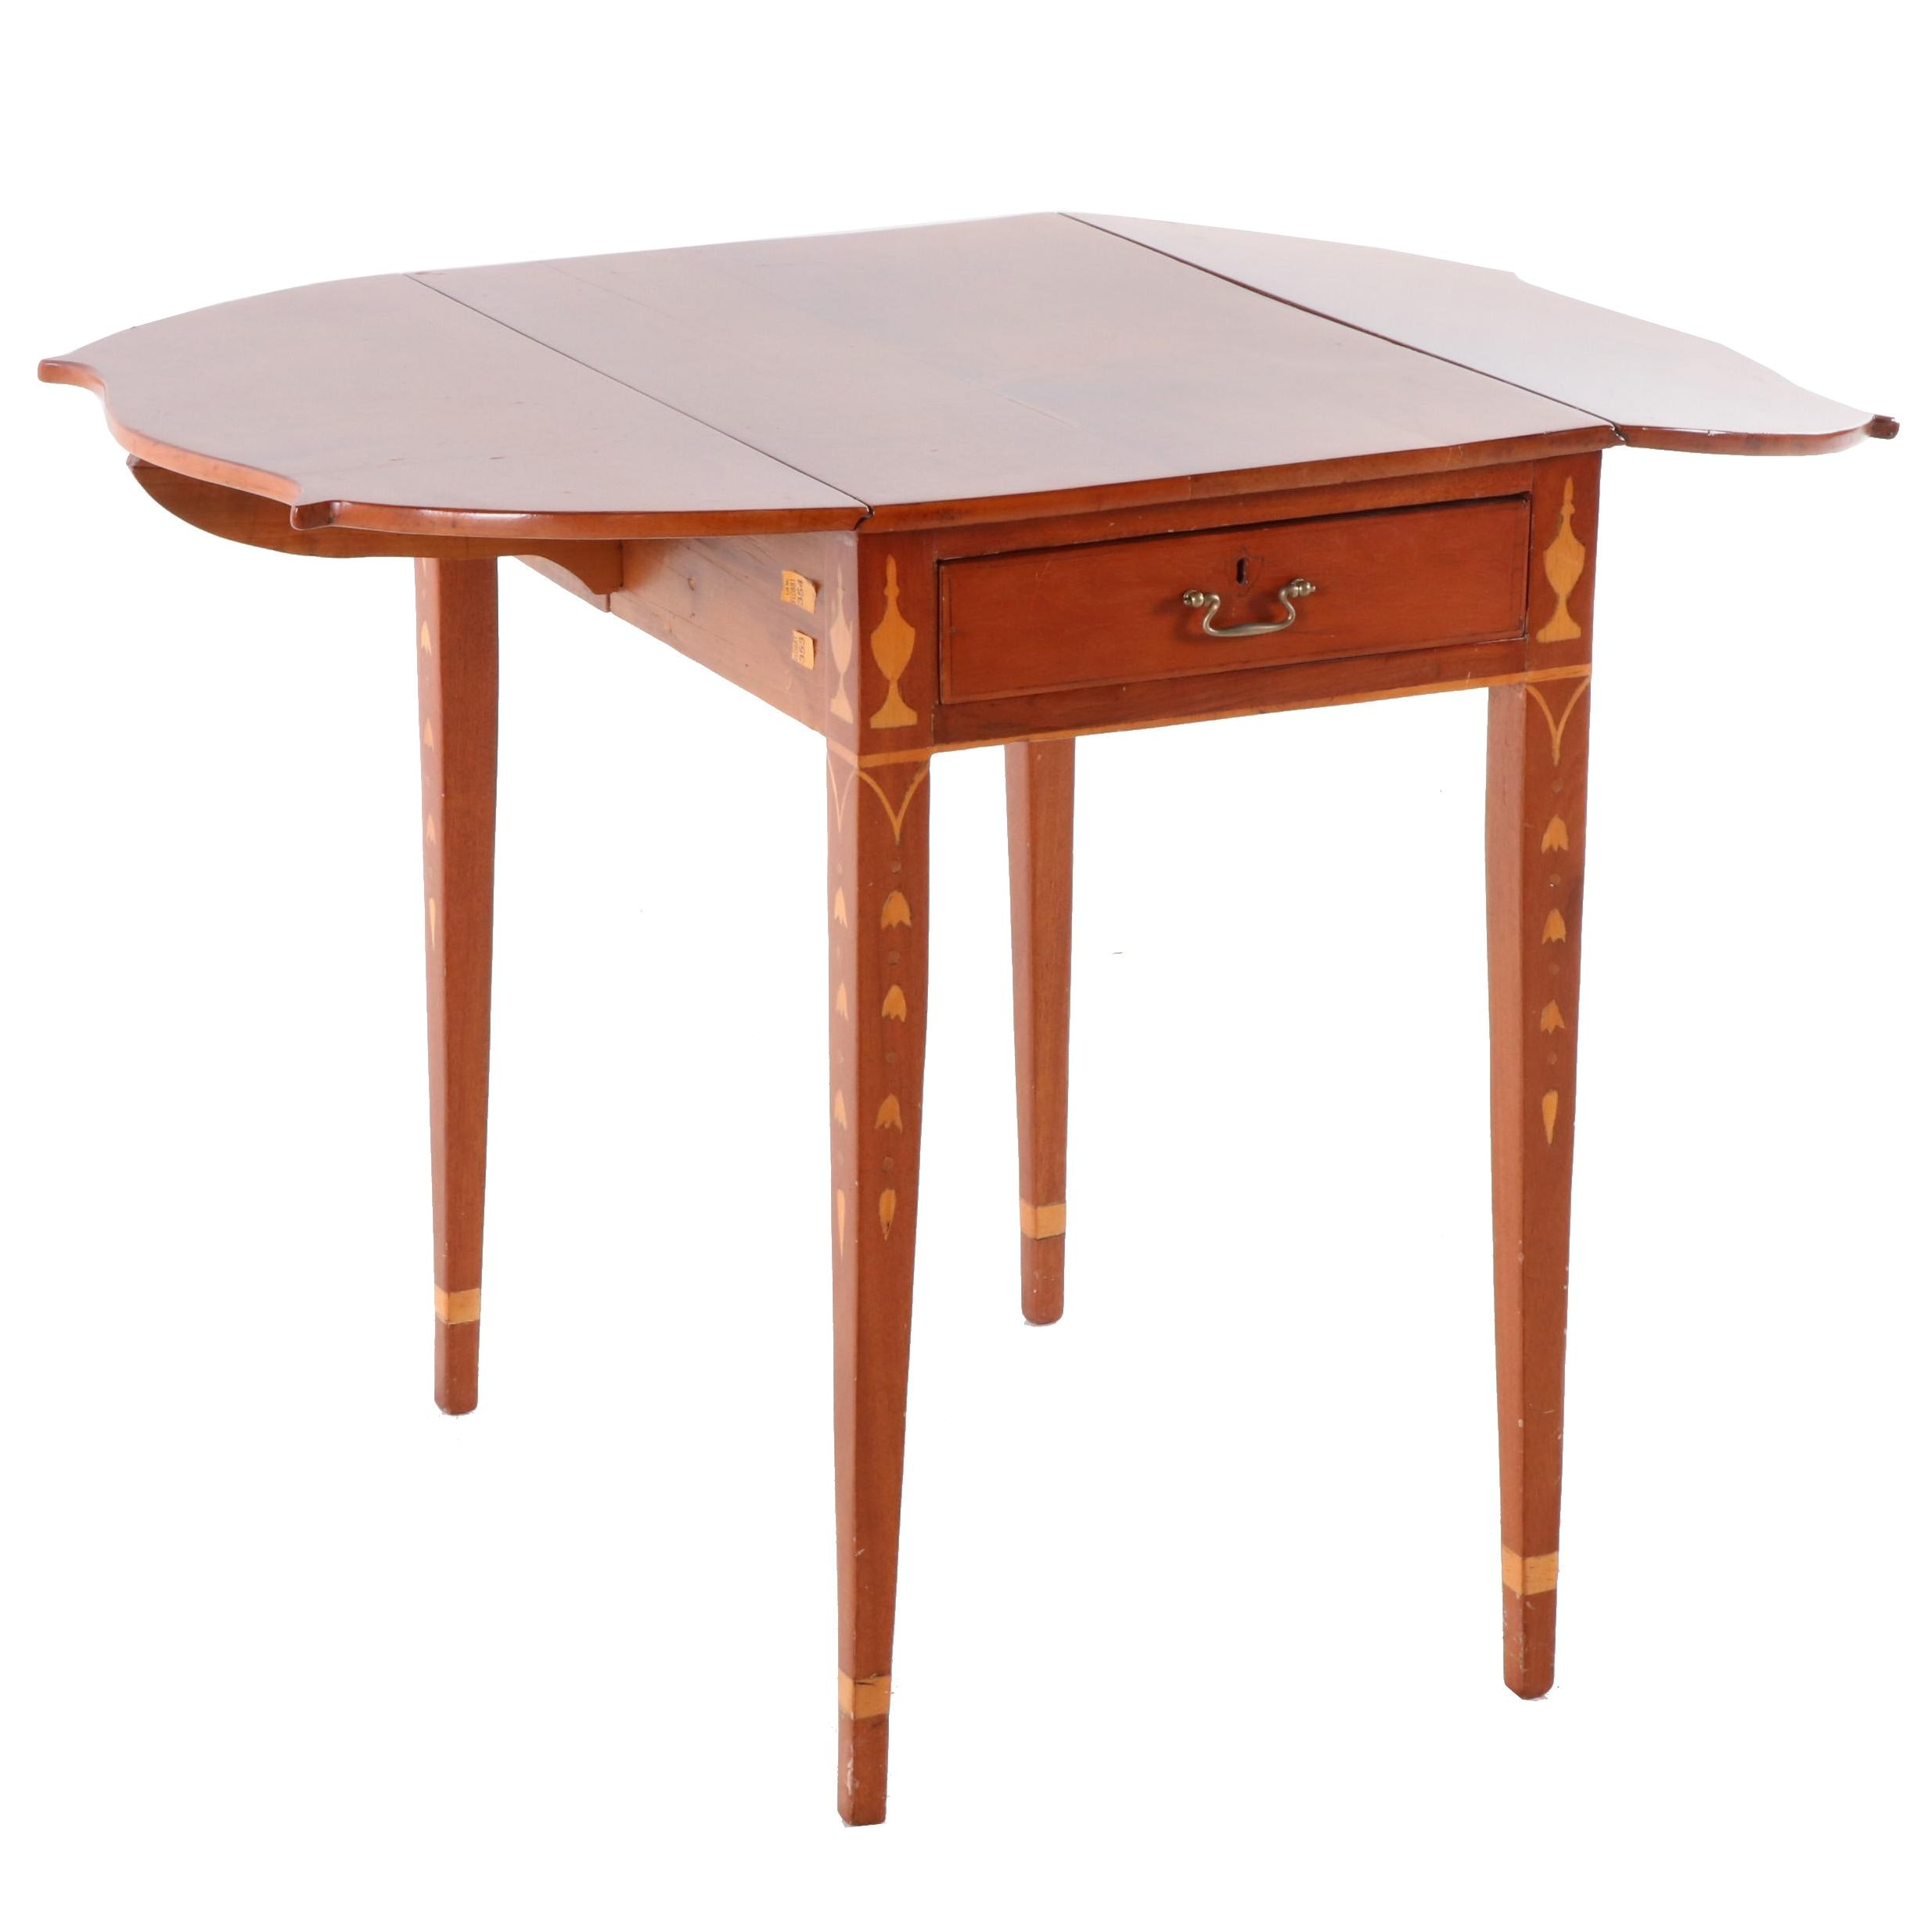 Federal Style Pembroke Table in Paint-Decorated Cherry, Early 20th Century